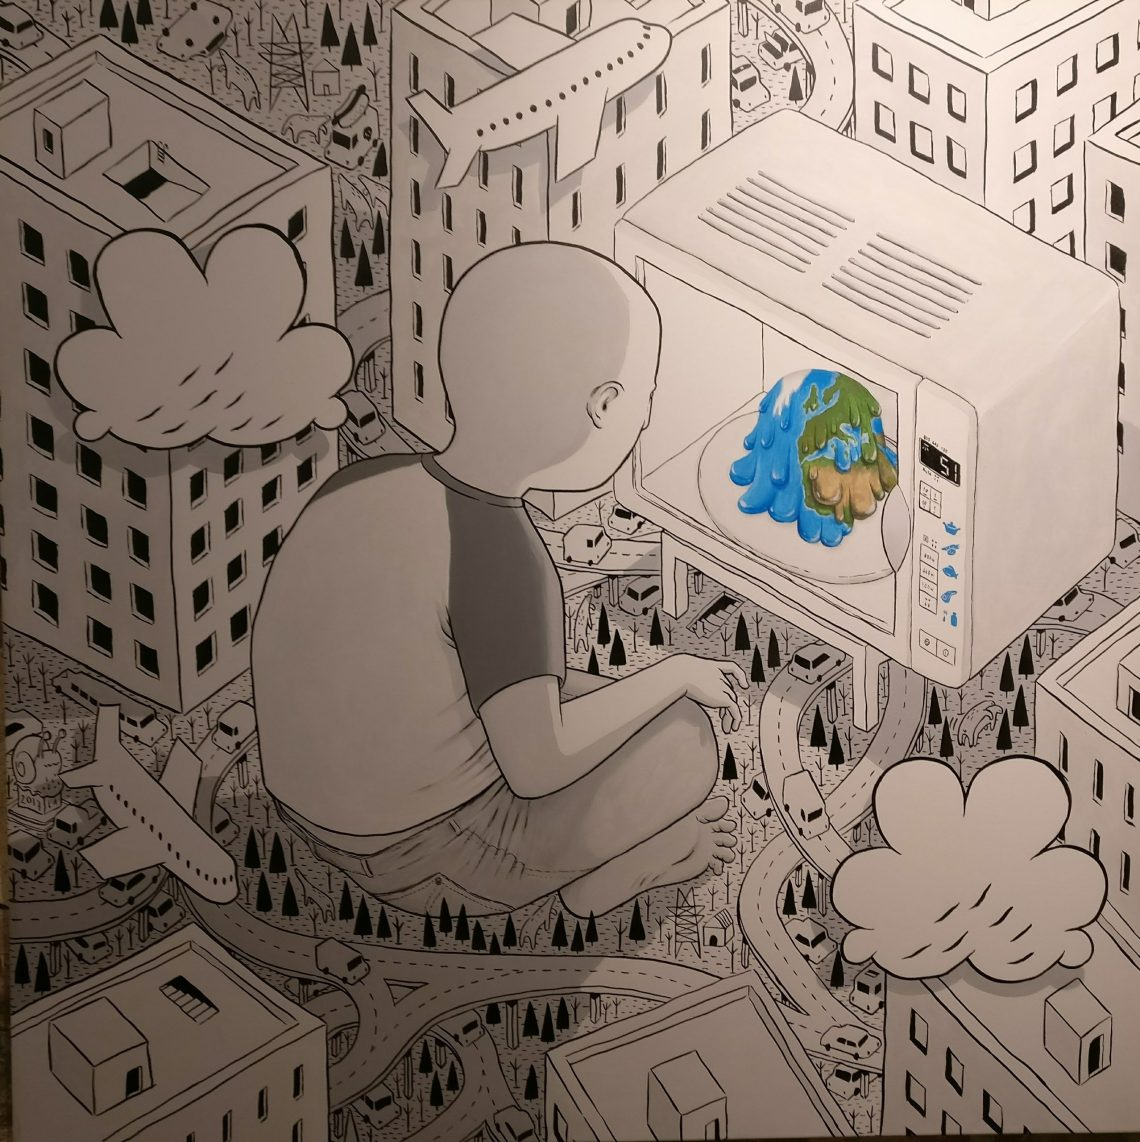 Painting by Millo at the Social Paradox exhibition at the Stolen Space Gallery